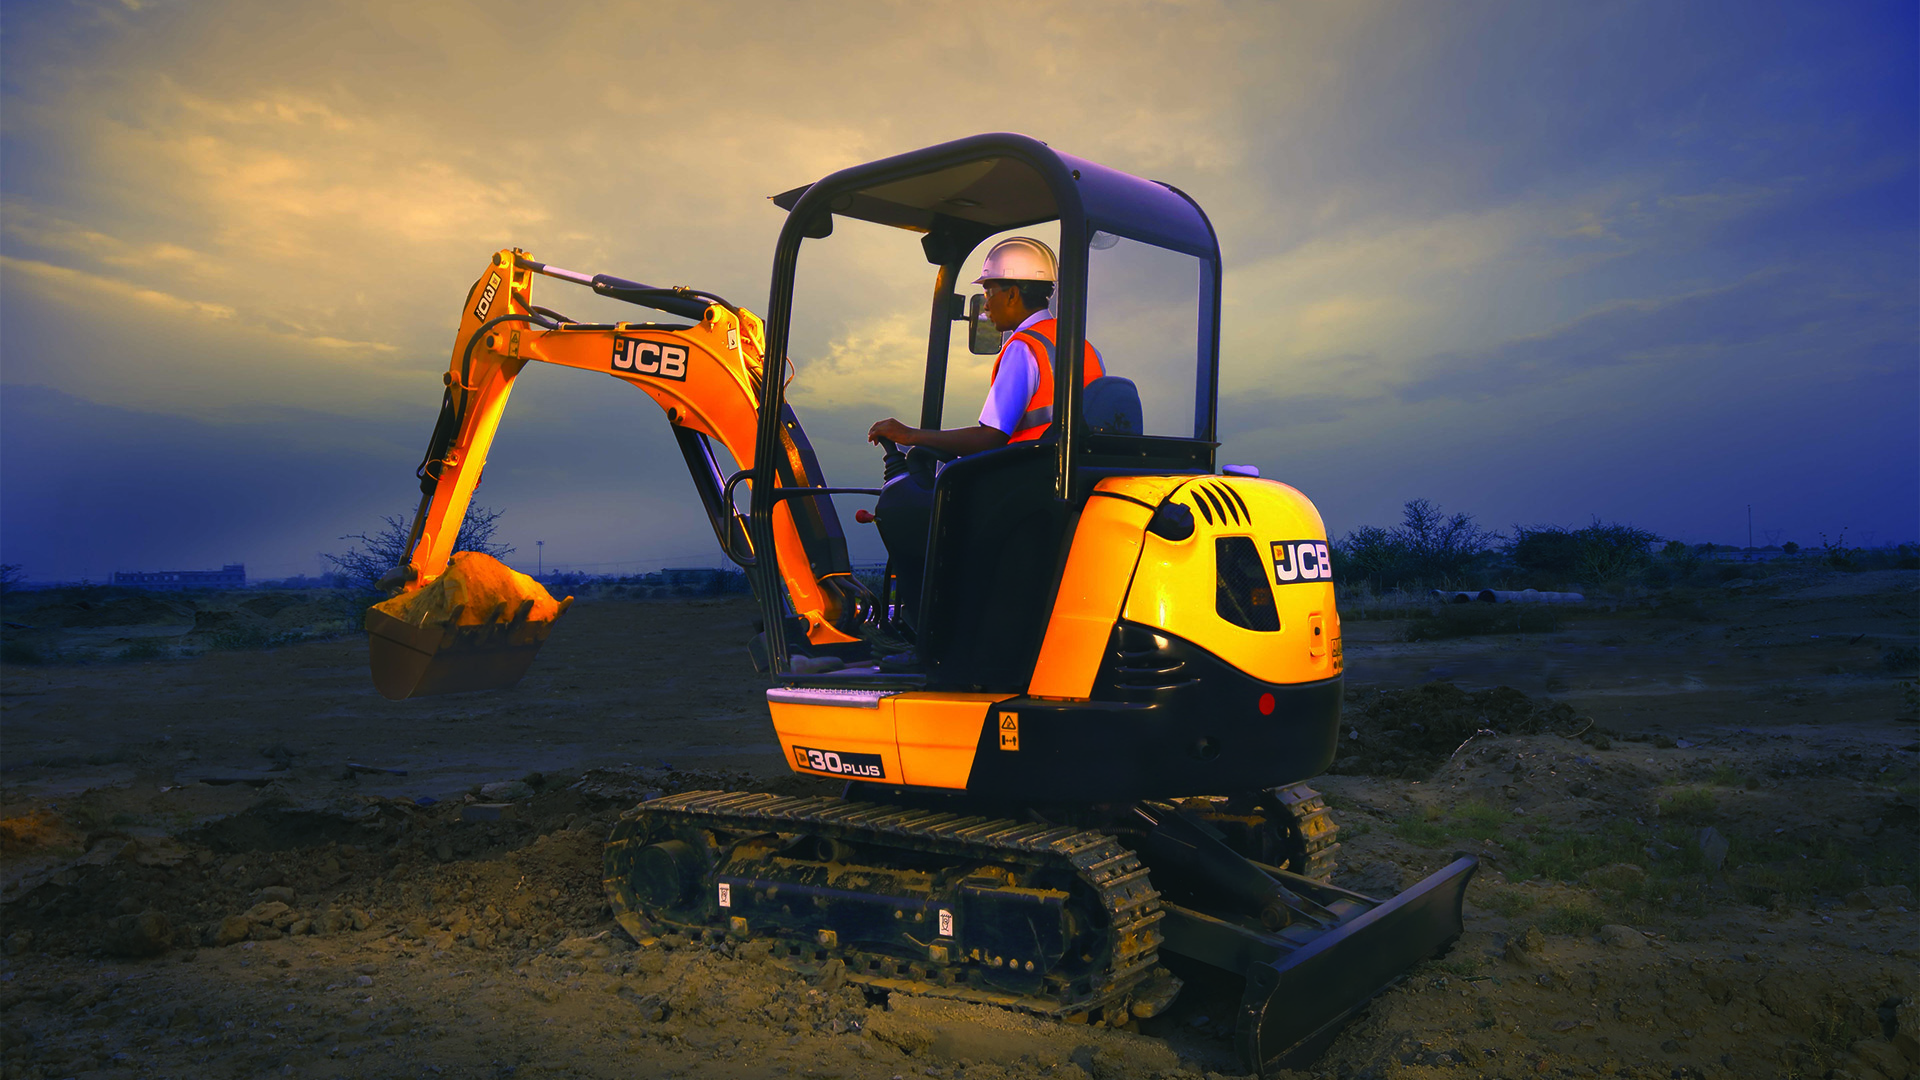 JCB 30Plus Tracked Excavator Images